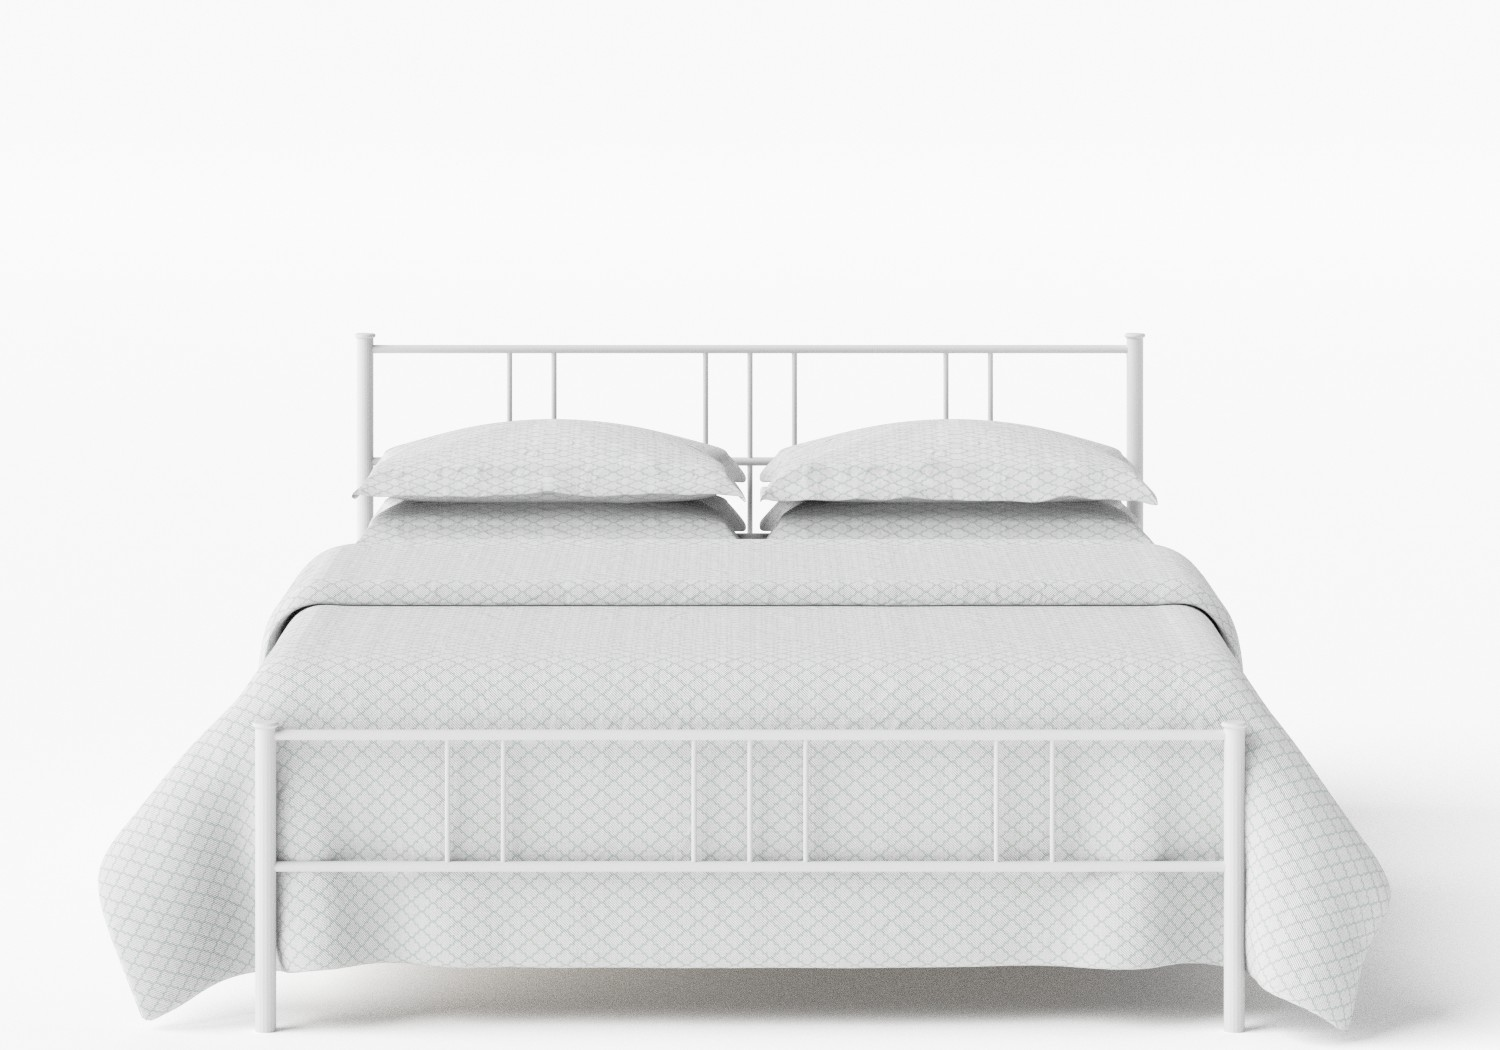 Mortlake Single Iron/Metal Bed in Satin White